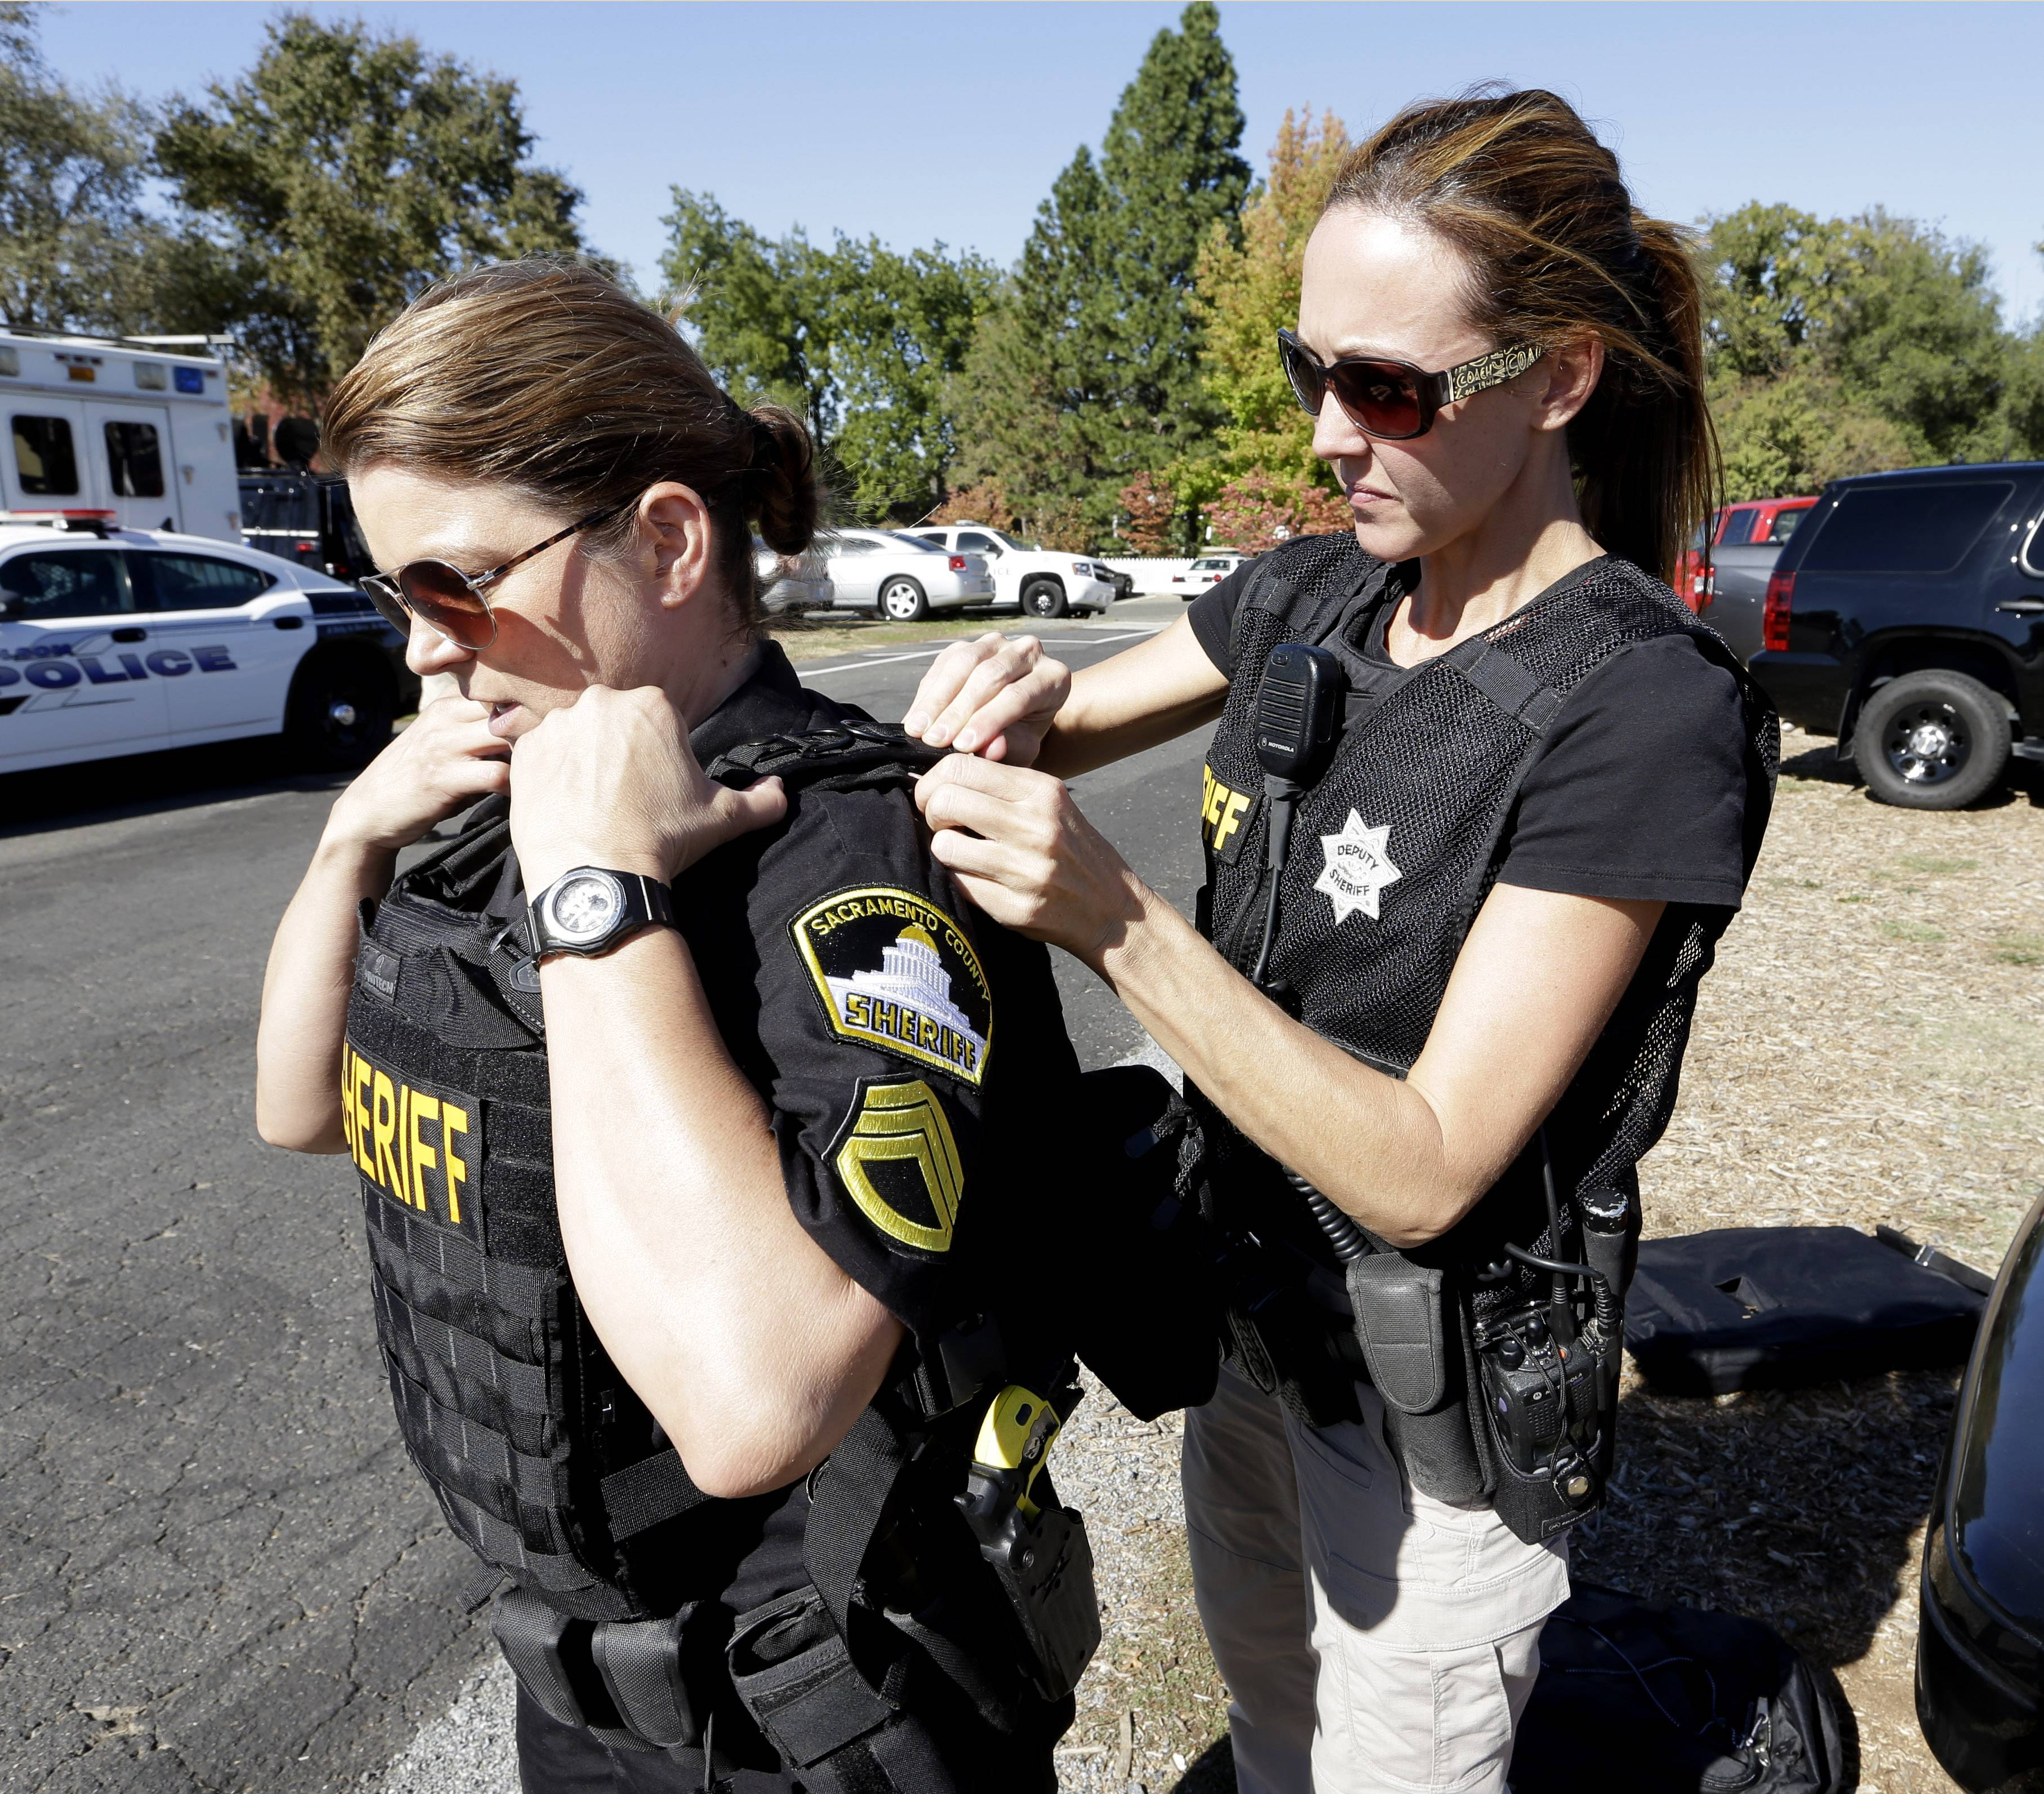 Sacramento County Sheriff's Detective Christie Lynn, right, tightens the protective vest of deputy Sgt. Donna Cox as they prepare to aid in the search of an assailant, in Auburn, Calif., who shot three sheriff's deputies in two Northern California Counties, Friday, Oct. 24, 2014. Deputies were searching a canyon in the Sierra Nevada foothills near Auburn for an armed man suspected in the shooting of a Sacramento County Sheriff's deputy and two Placer County Deputies and a bystander in an attempt to carjack a vehicle.